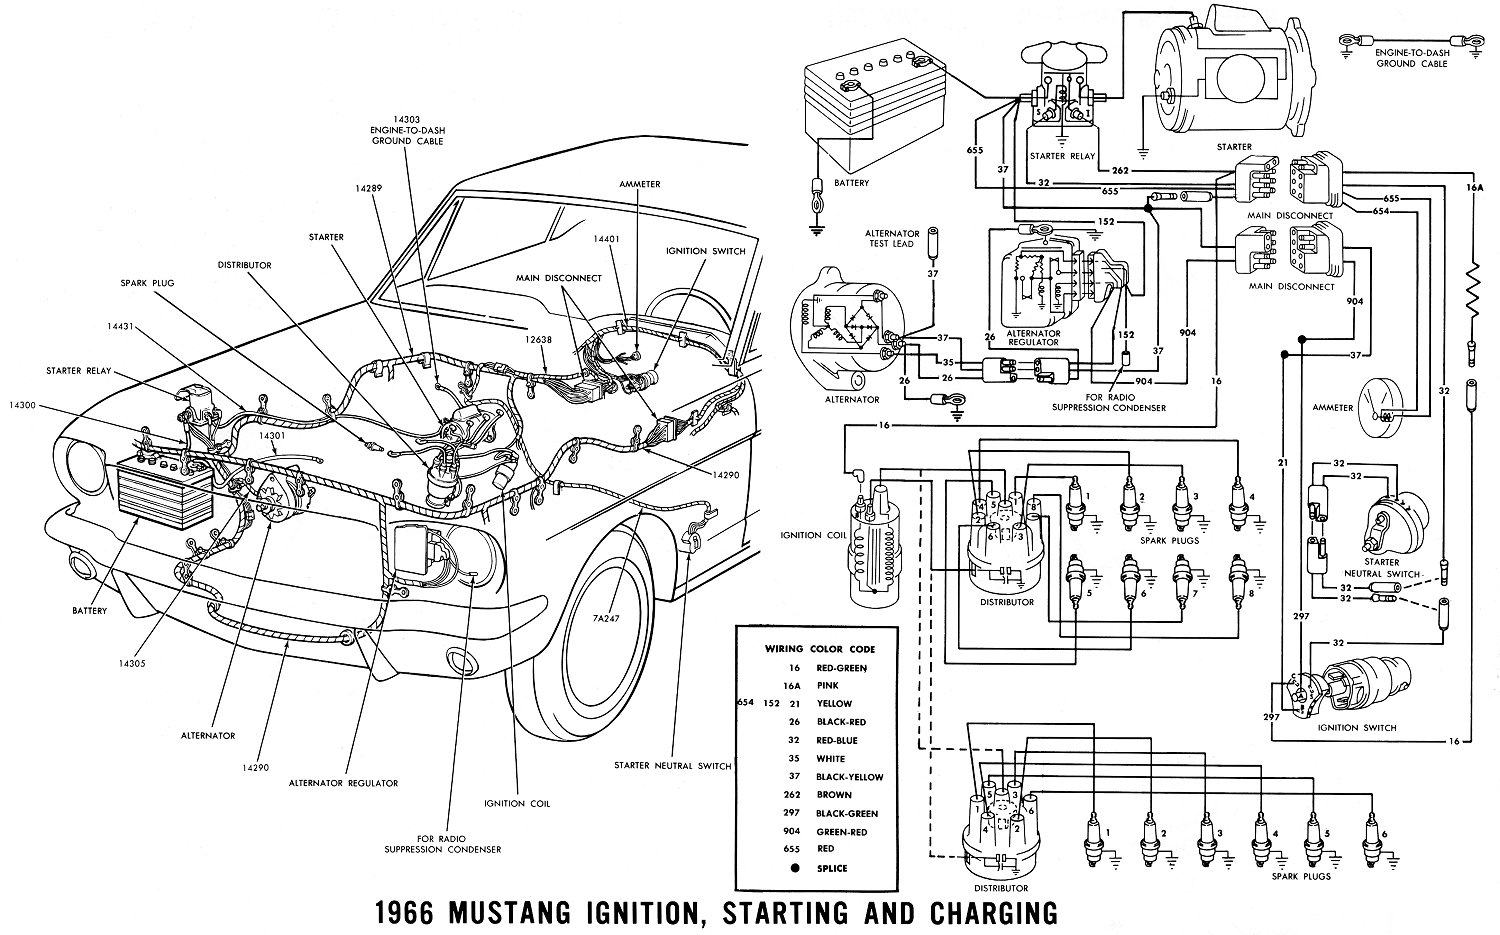 88 mazda alternator wiring with Wiring on 1995 Buick Century Fuse Box Diagram further Apfc Panel Wiring Diagram Pdf further Ford 5 4 Liter Engine Diagrams And Schematics as well Wiring besides hicar Wiring Diagram.